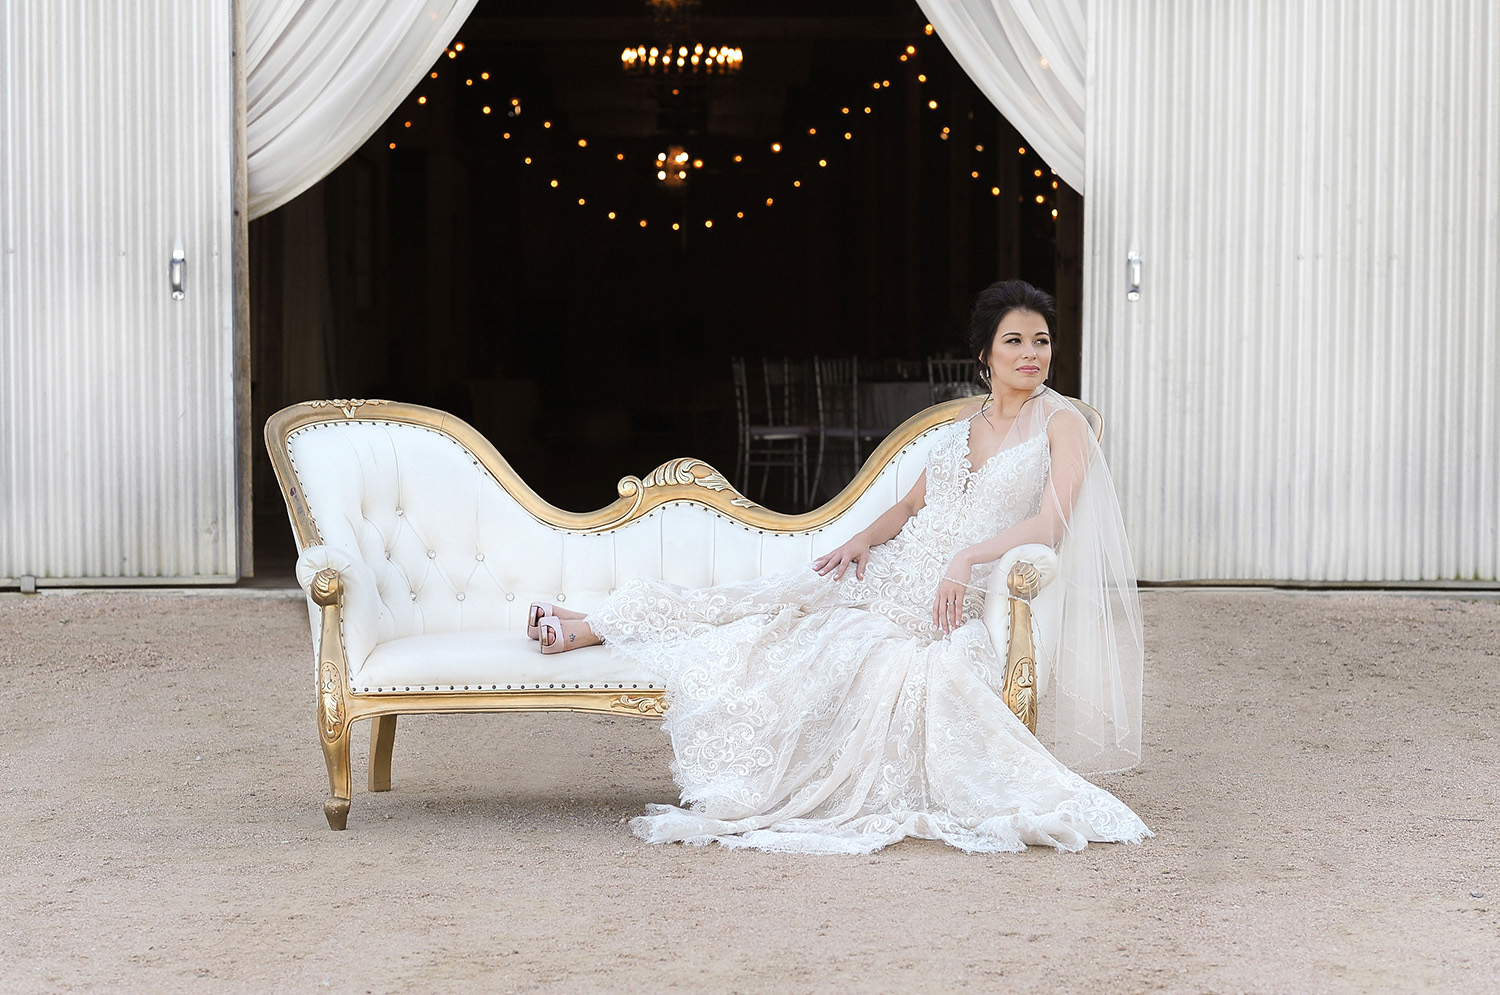 The Texas Bride - Weddings In Houston - Moffitt Oaks Styled Shoot - Jessica Frey Photography